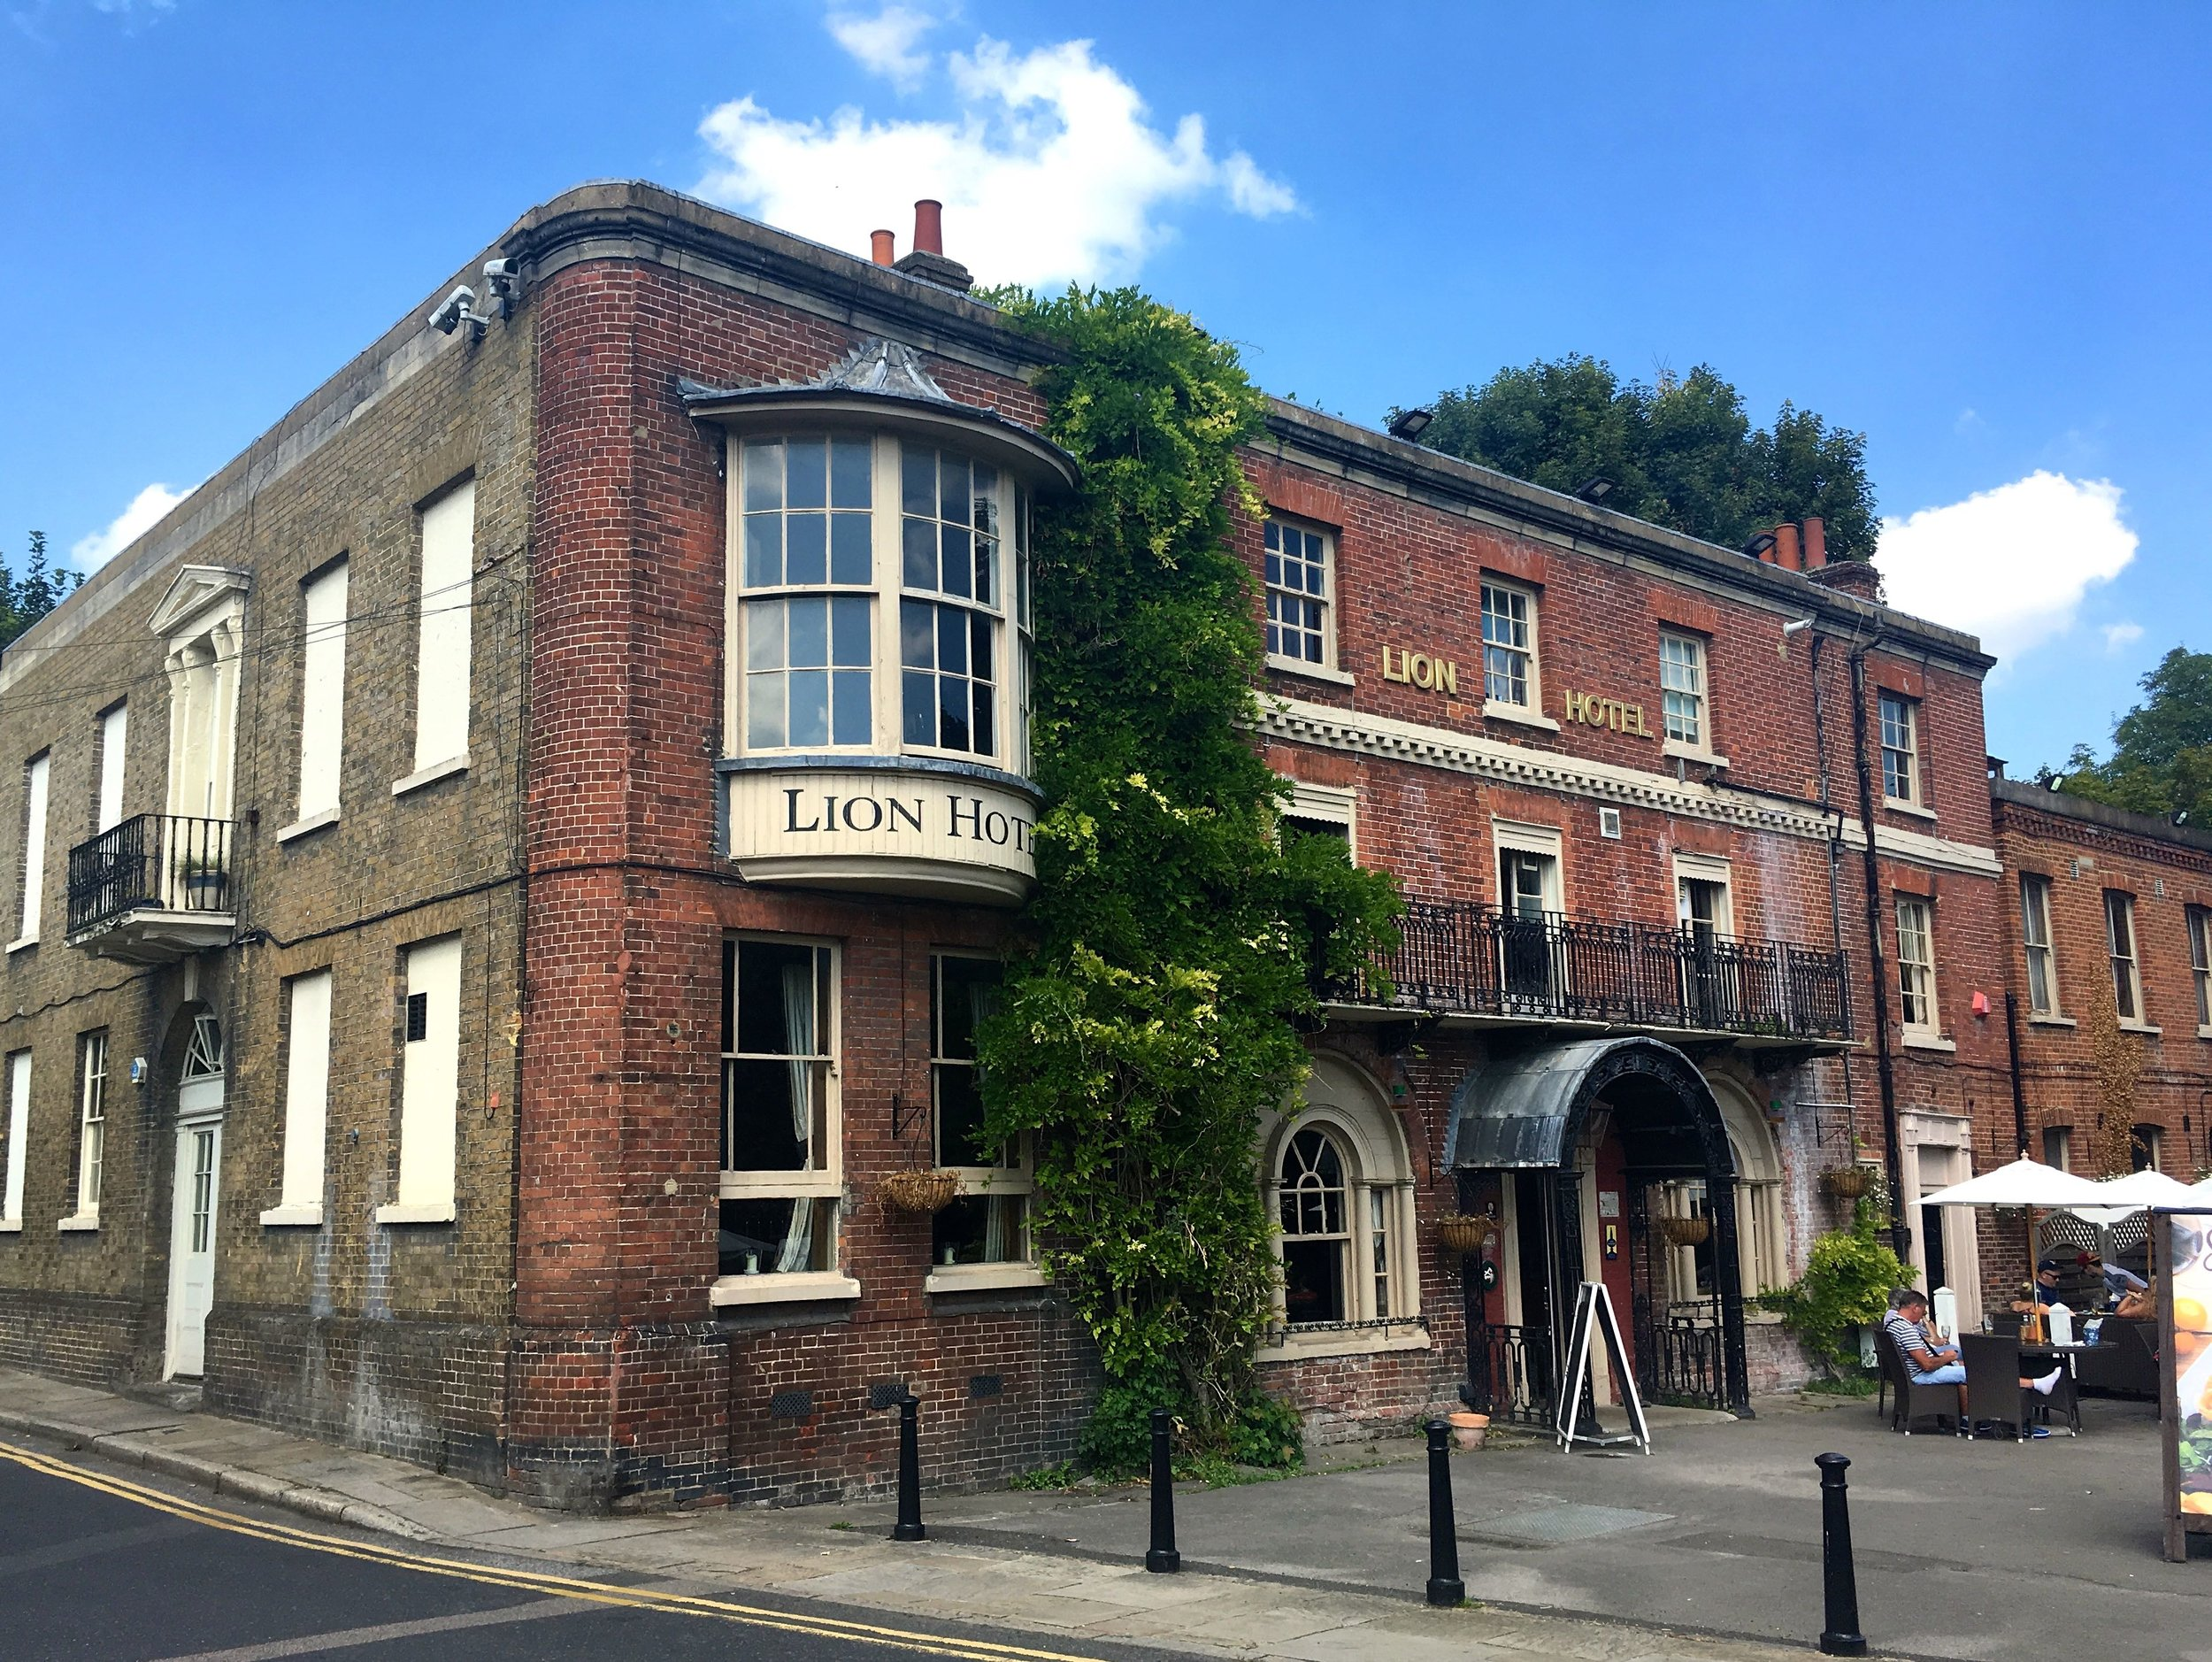 THE LION HOTEL IN FARNINGHAM